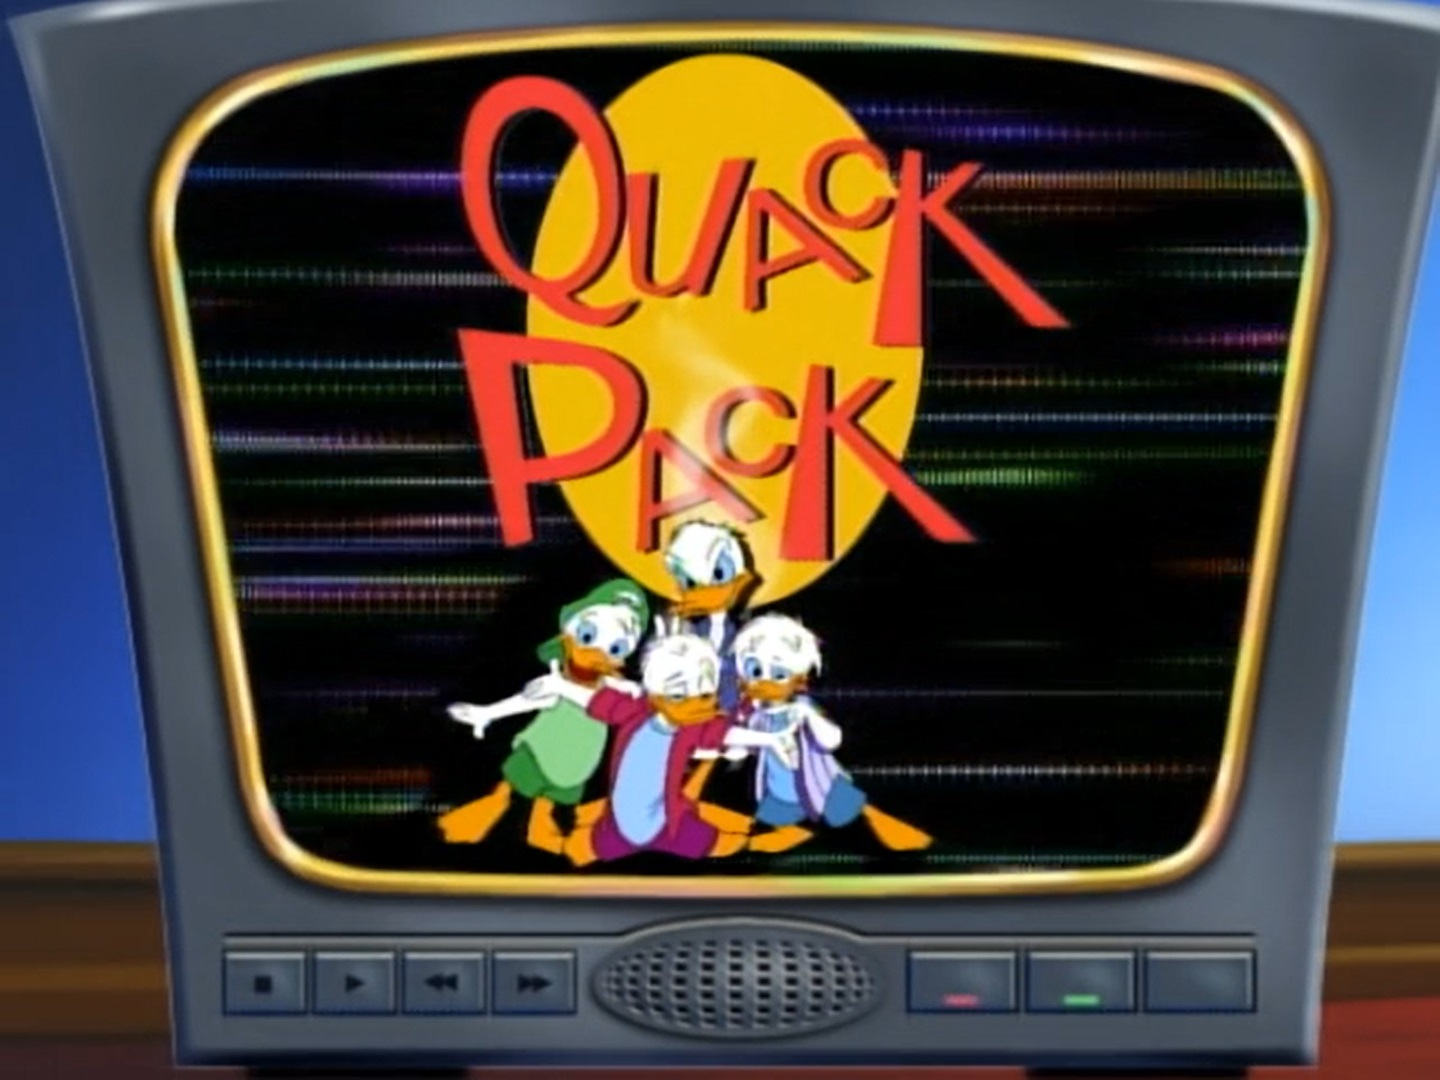 Quack Pack episode list